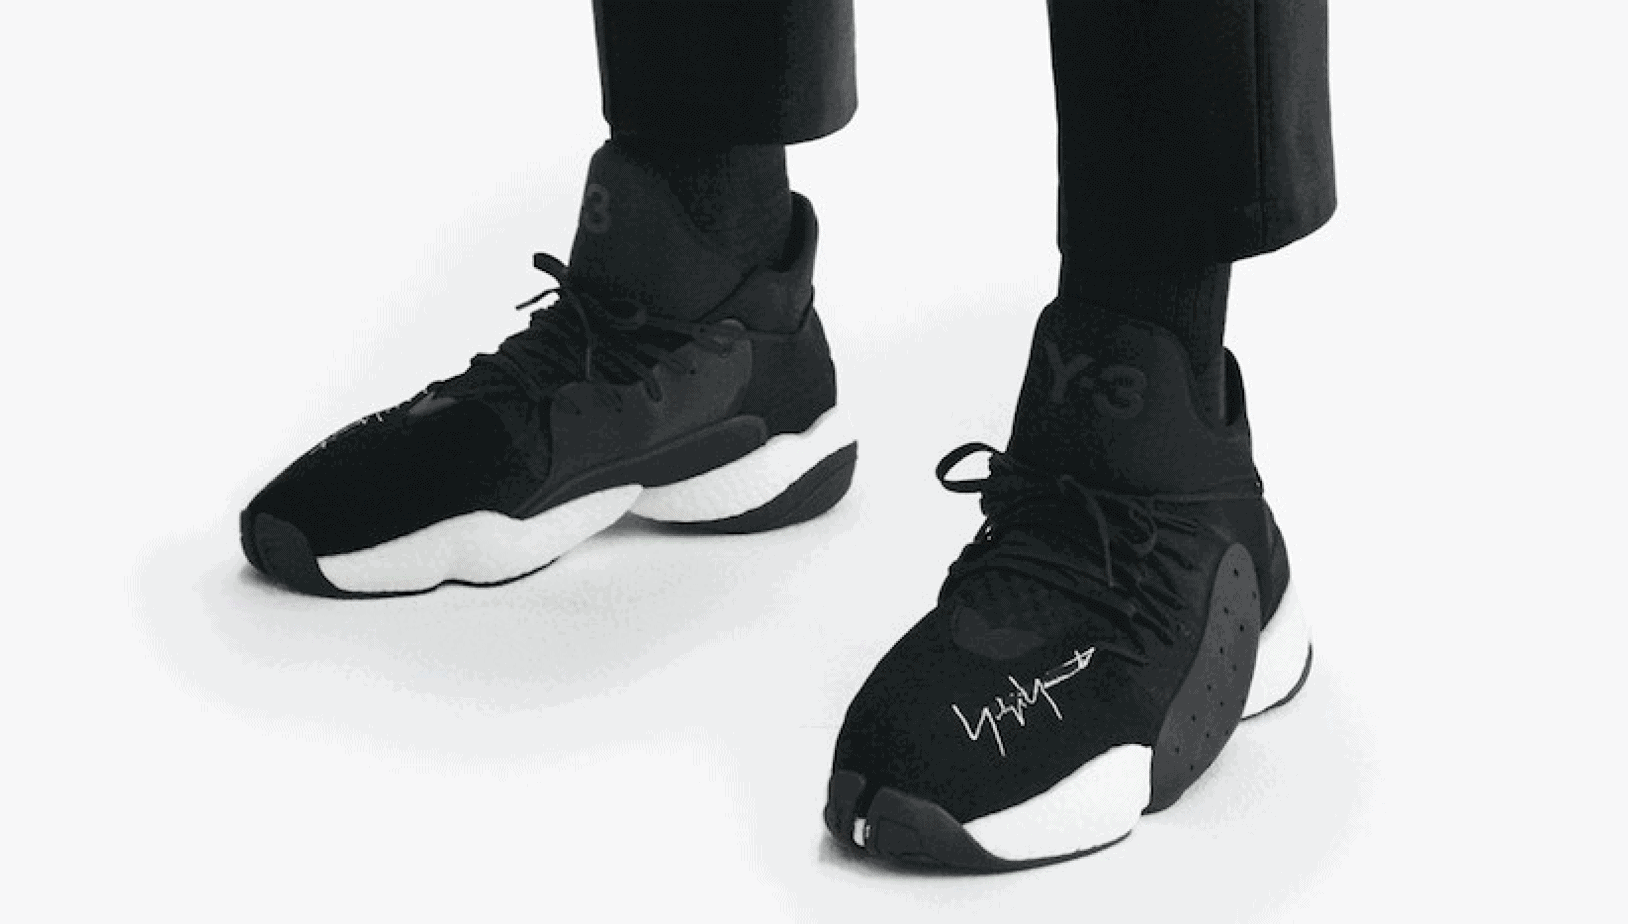 17f74d99403c1 Yohji Yamamoto has been working with adidas on his Y-3 label for over a  decade now. Yohji s passion for excellence is well documented in his work